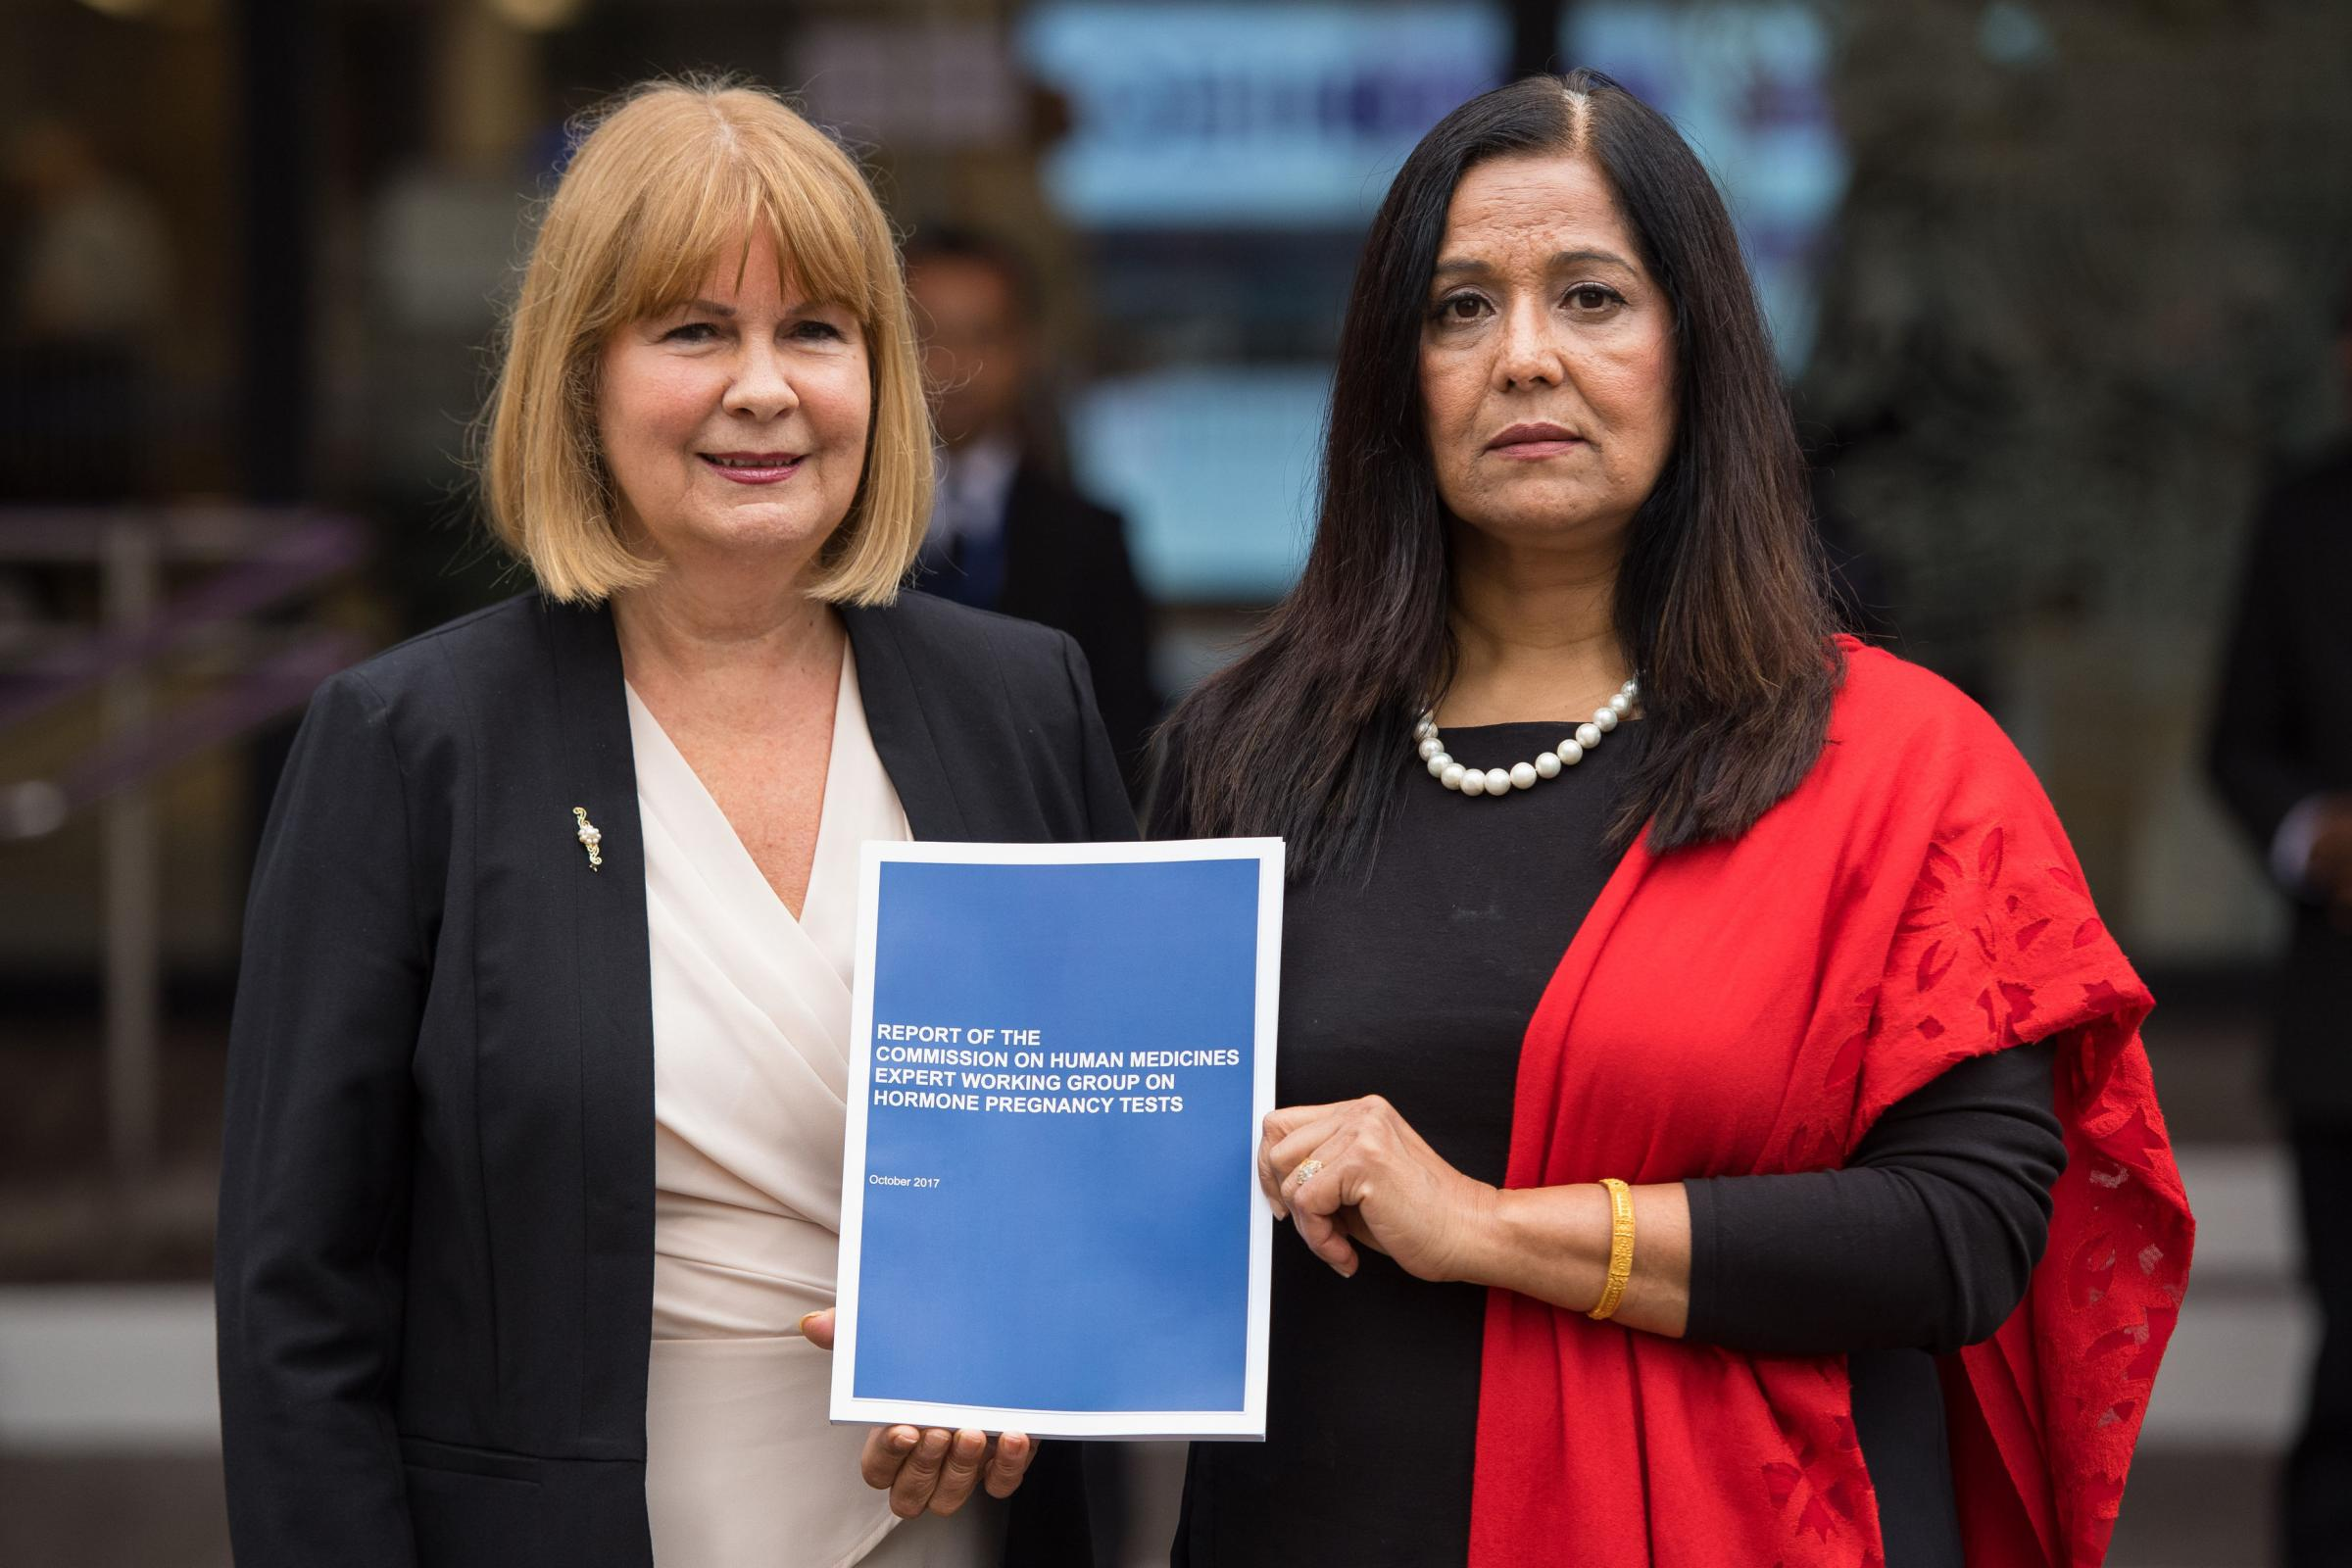 From left, Chair of the Association for Children Damaged by Hormone Pregnancy Tests Marie Lyon and Yasmin Qureshi MP hold a copy of the Commission on Human Medicines Expert Working Group Report on Hormone Pregnancy Tests .Picture by Dominic Lipinski/PA Wi